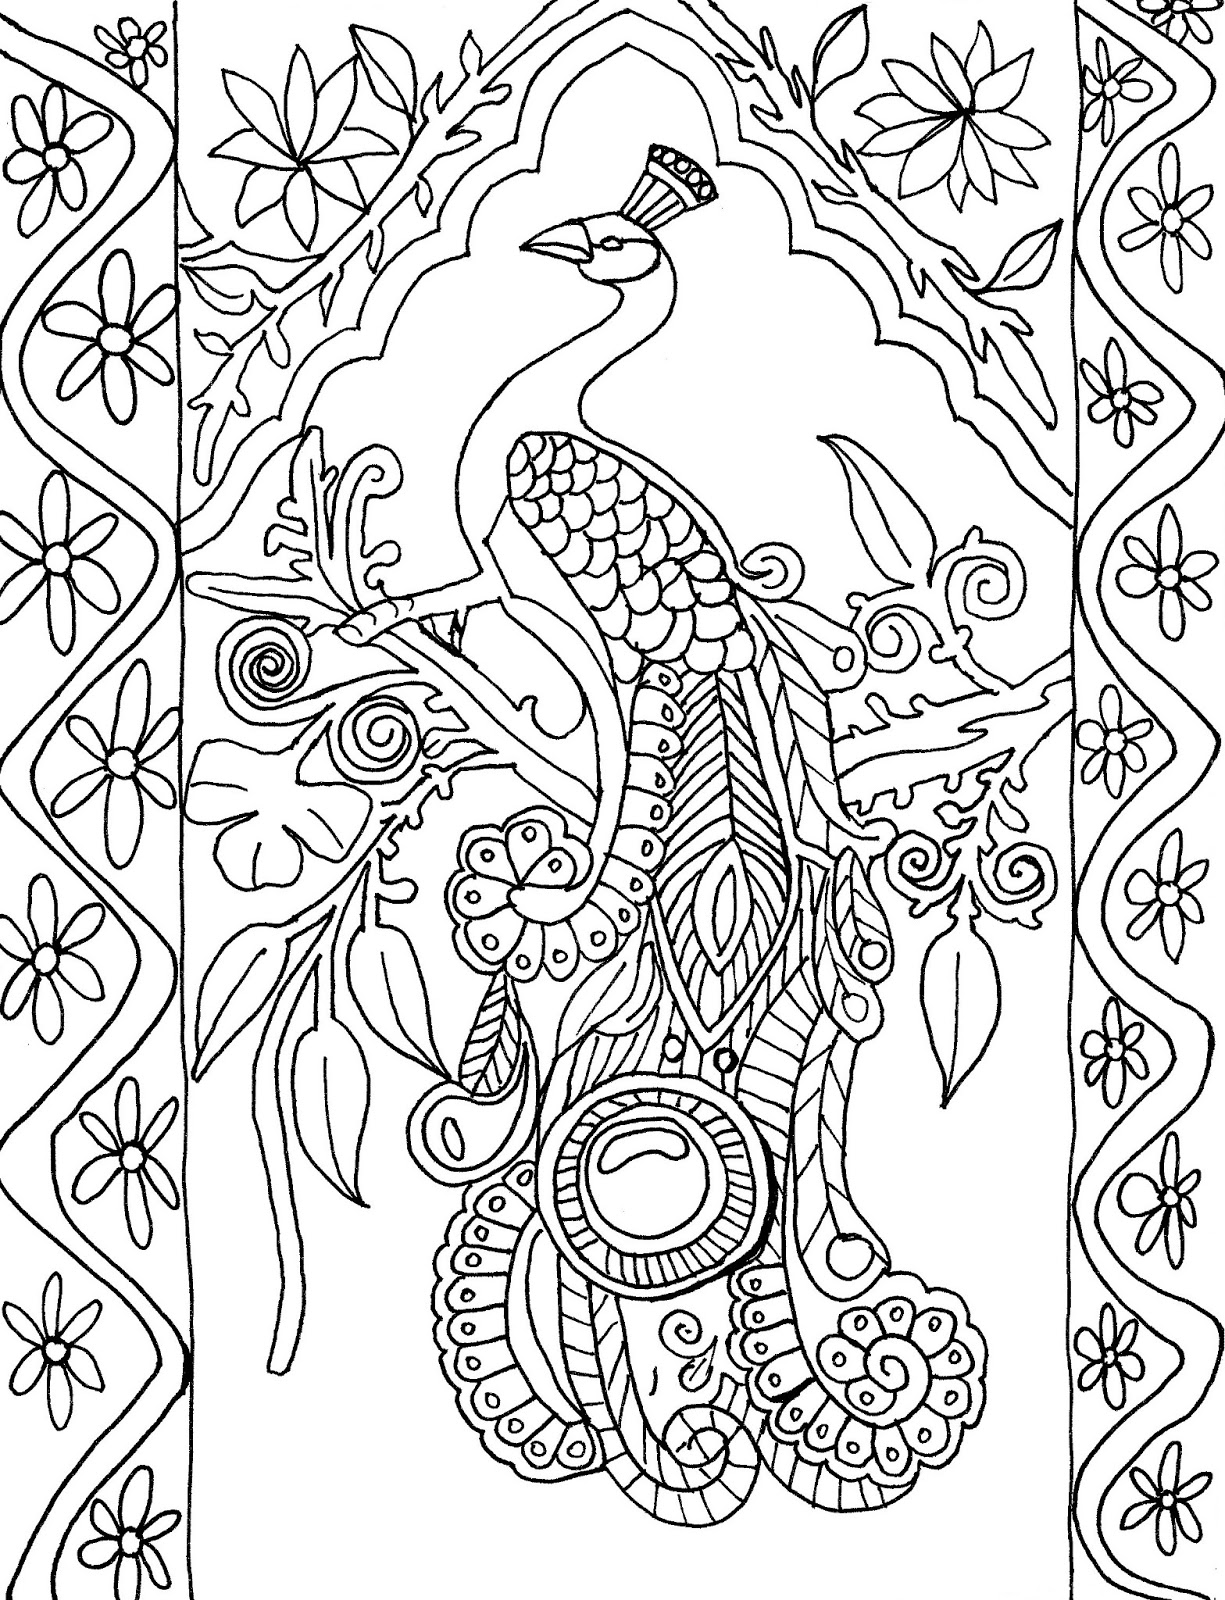 Easy Peacock Drawing At Getdrawings Com Free For Personal Use Easy